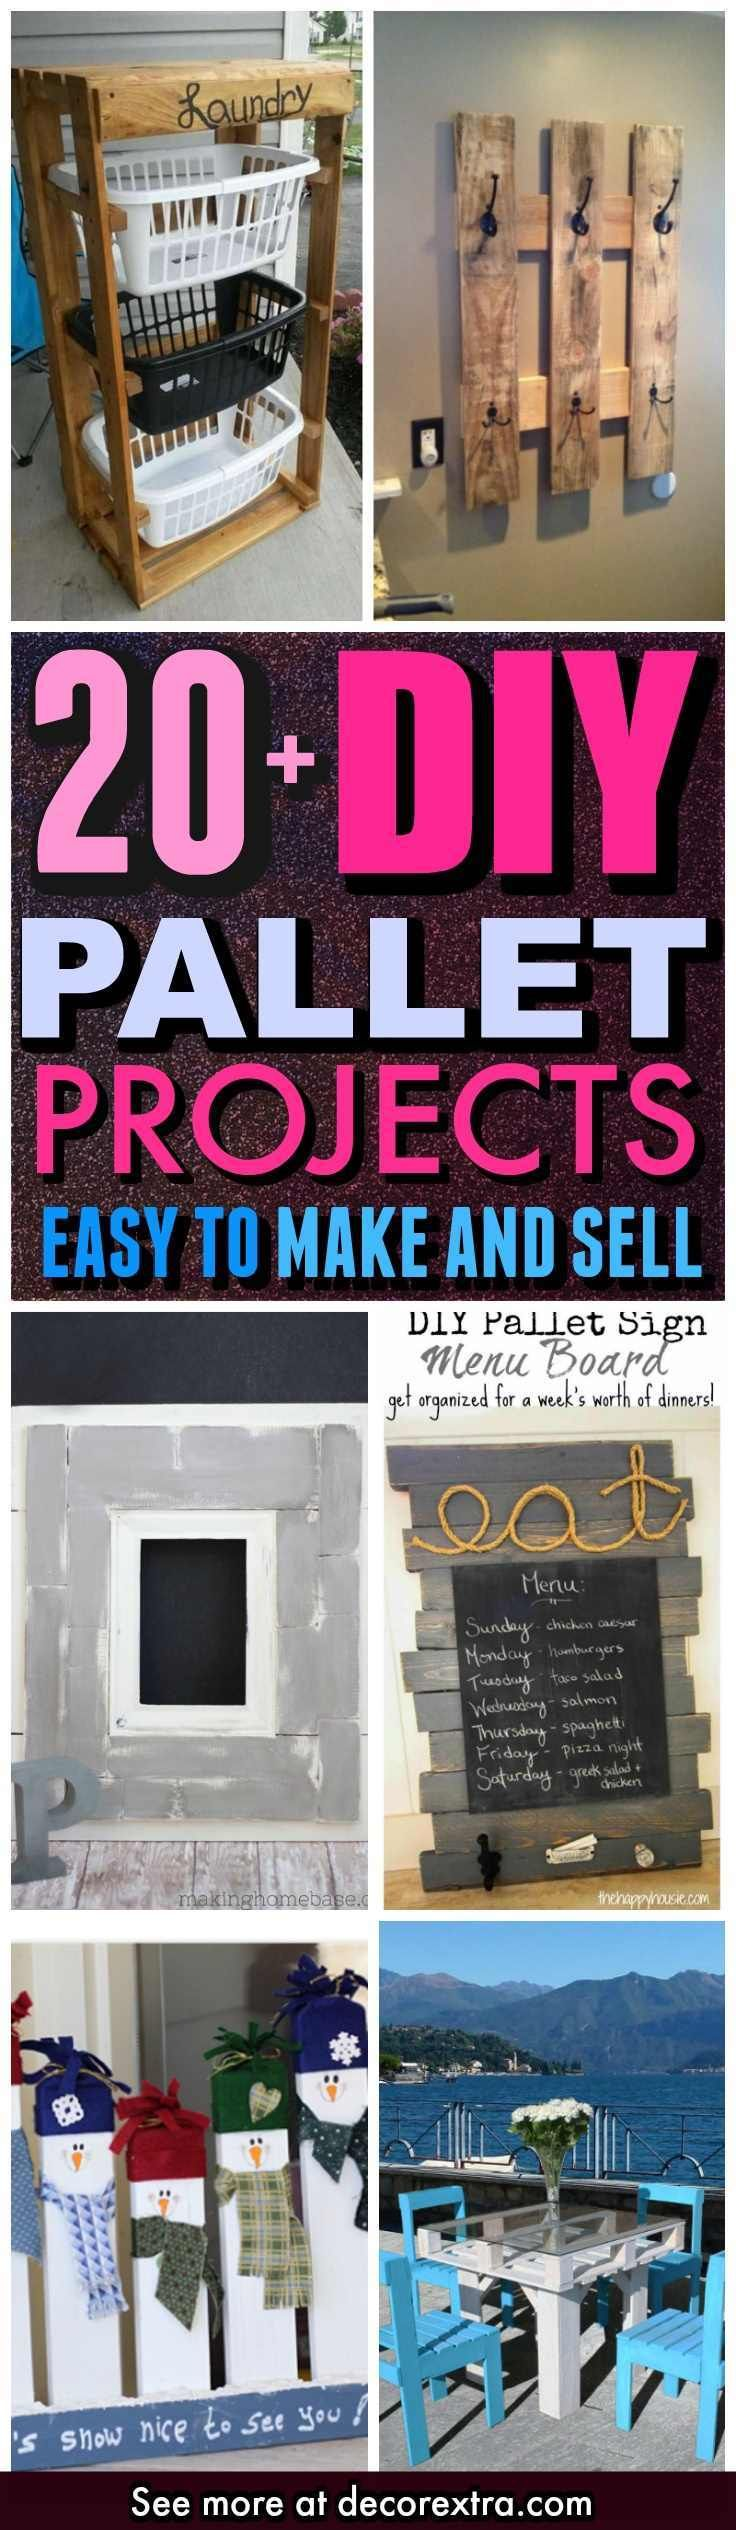 20+ DIY Pallet Projects That Are Easy to Make and Sell via @decorextra